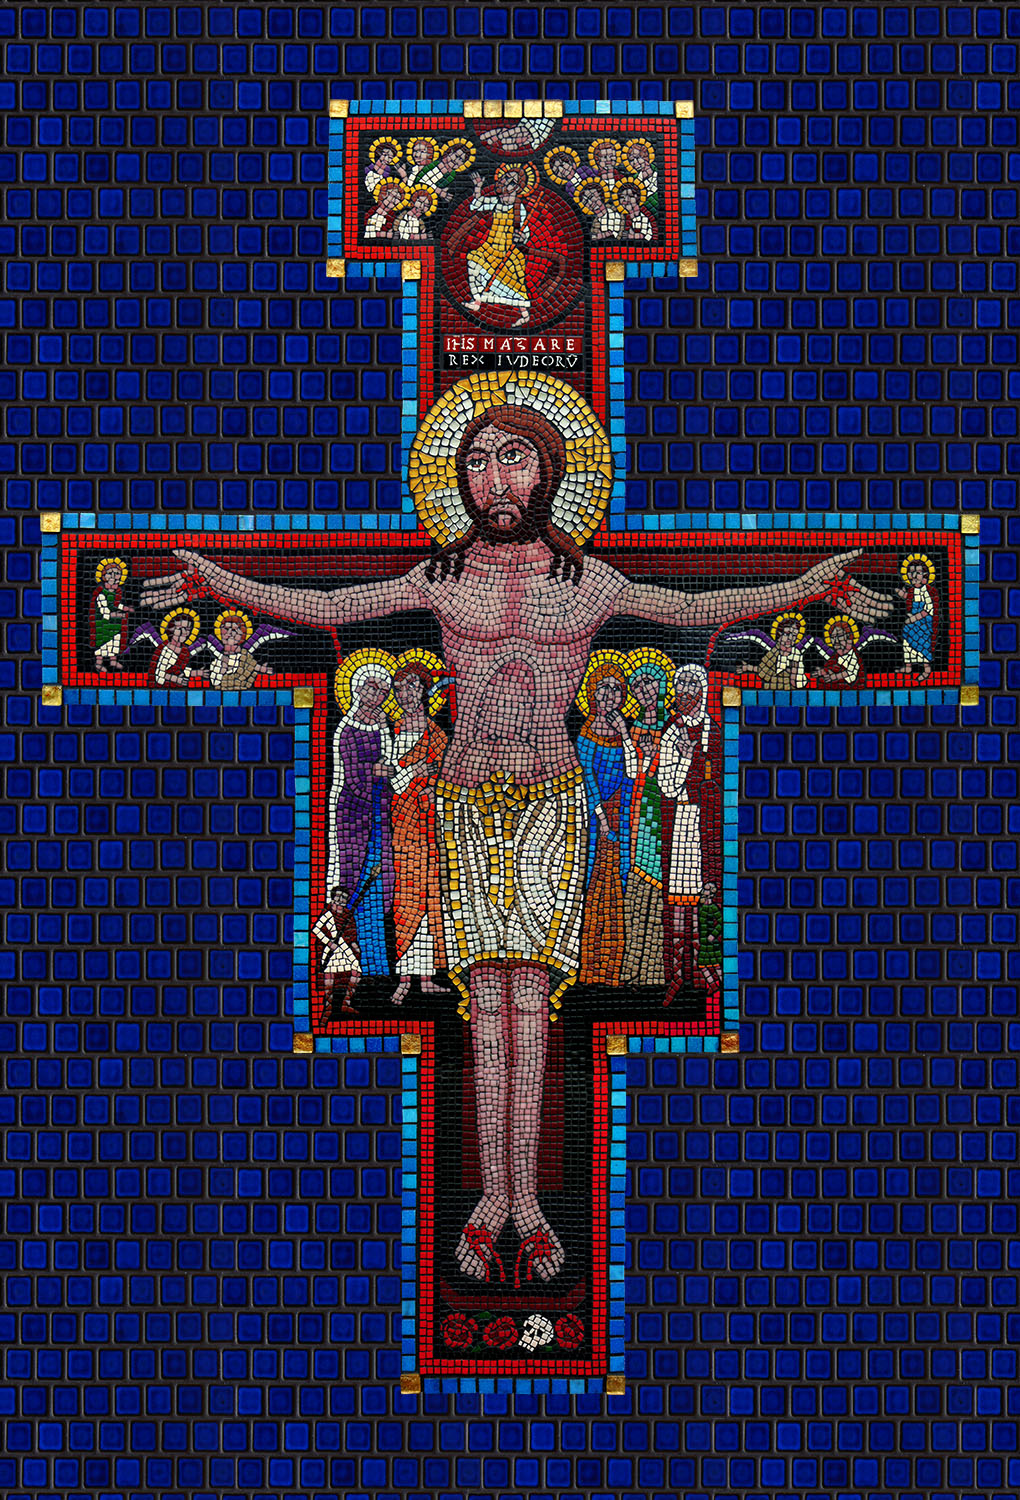 Damiamo Crucifix_lowres-cropped.jpg